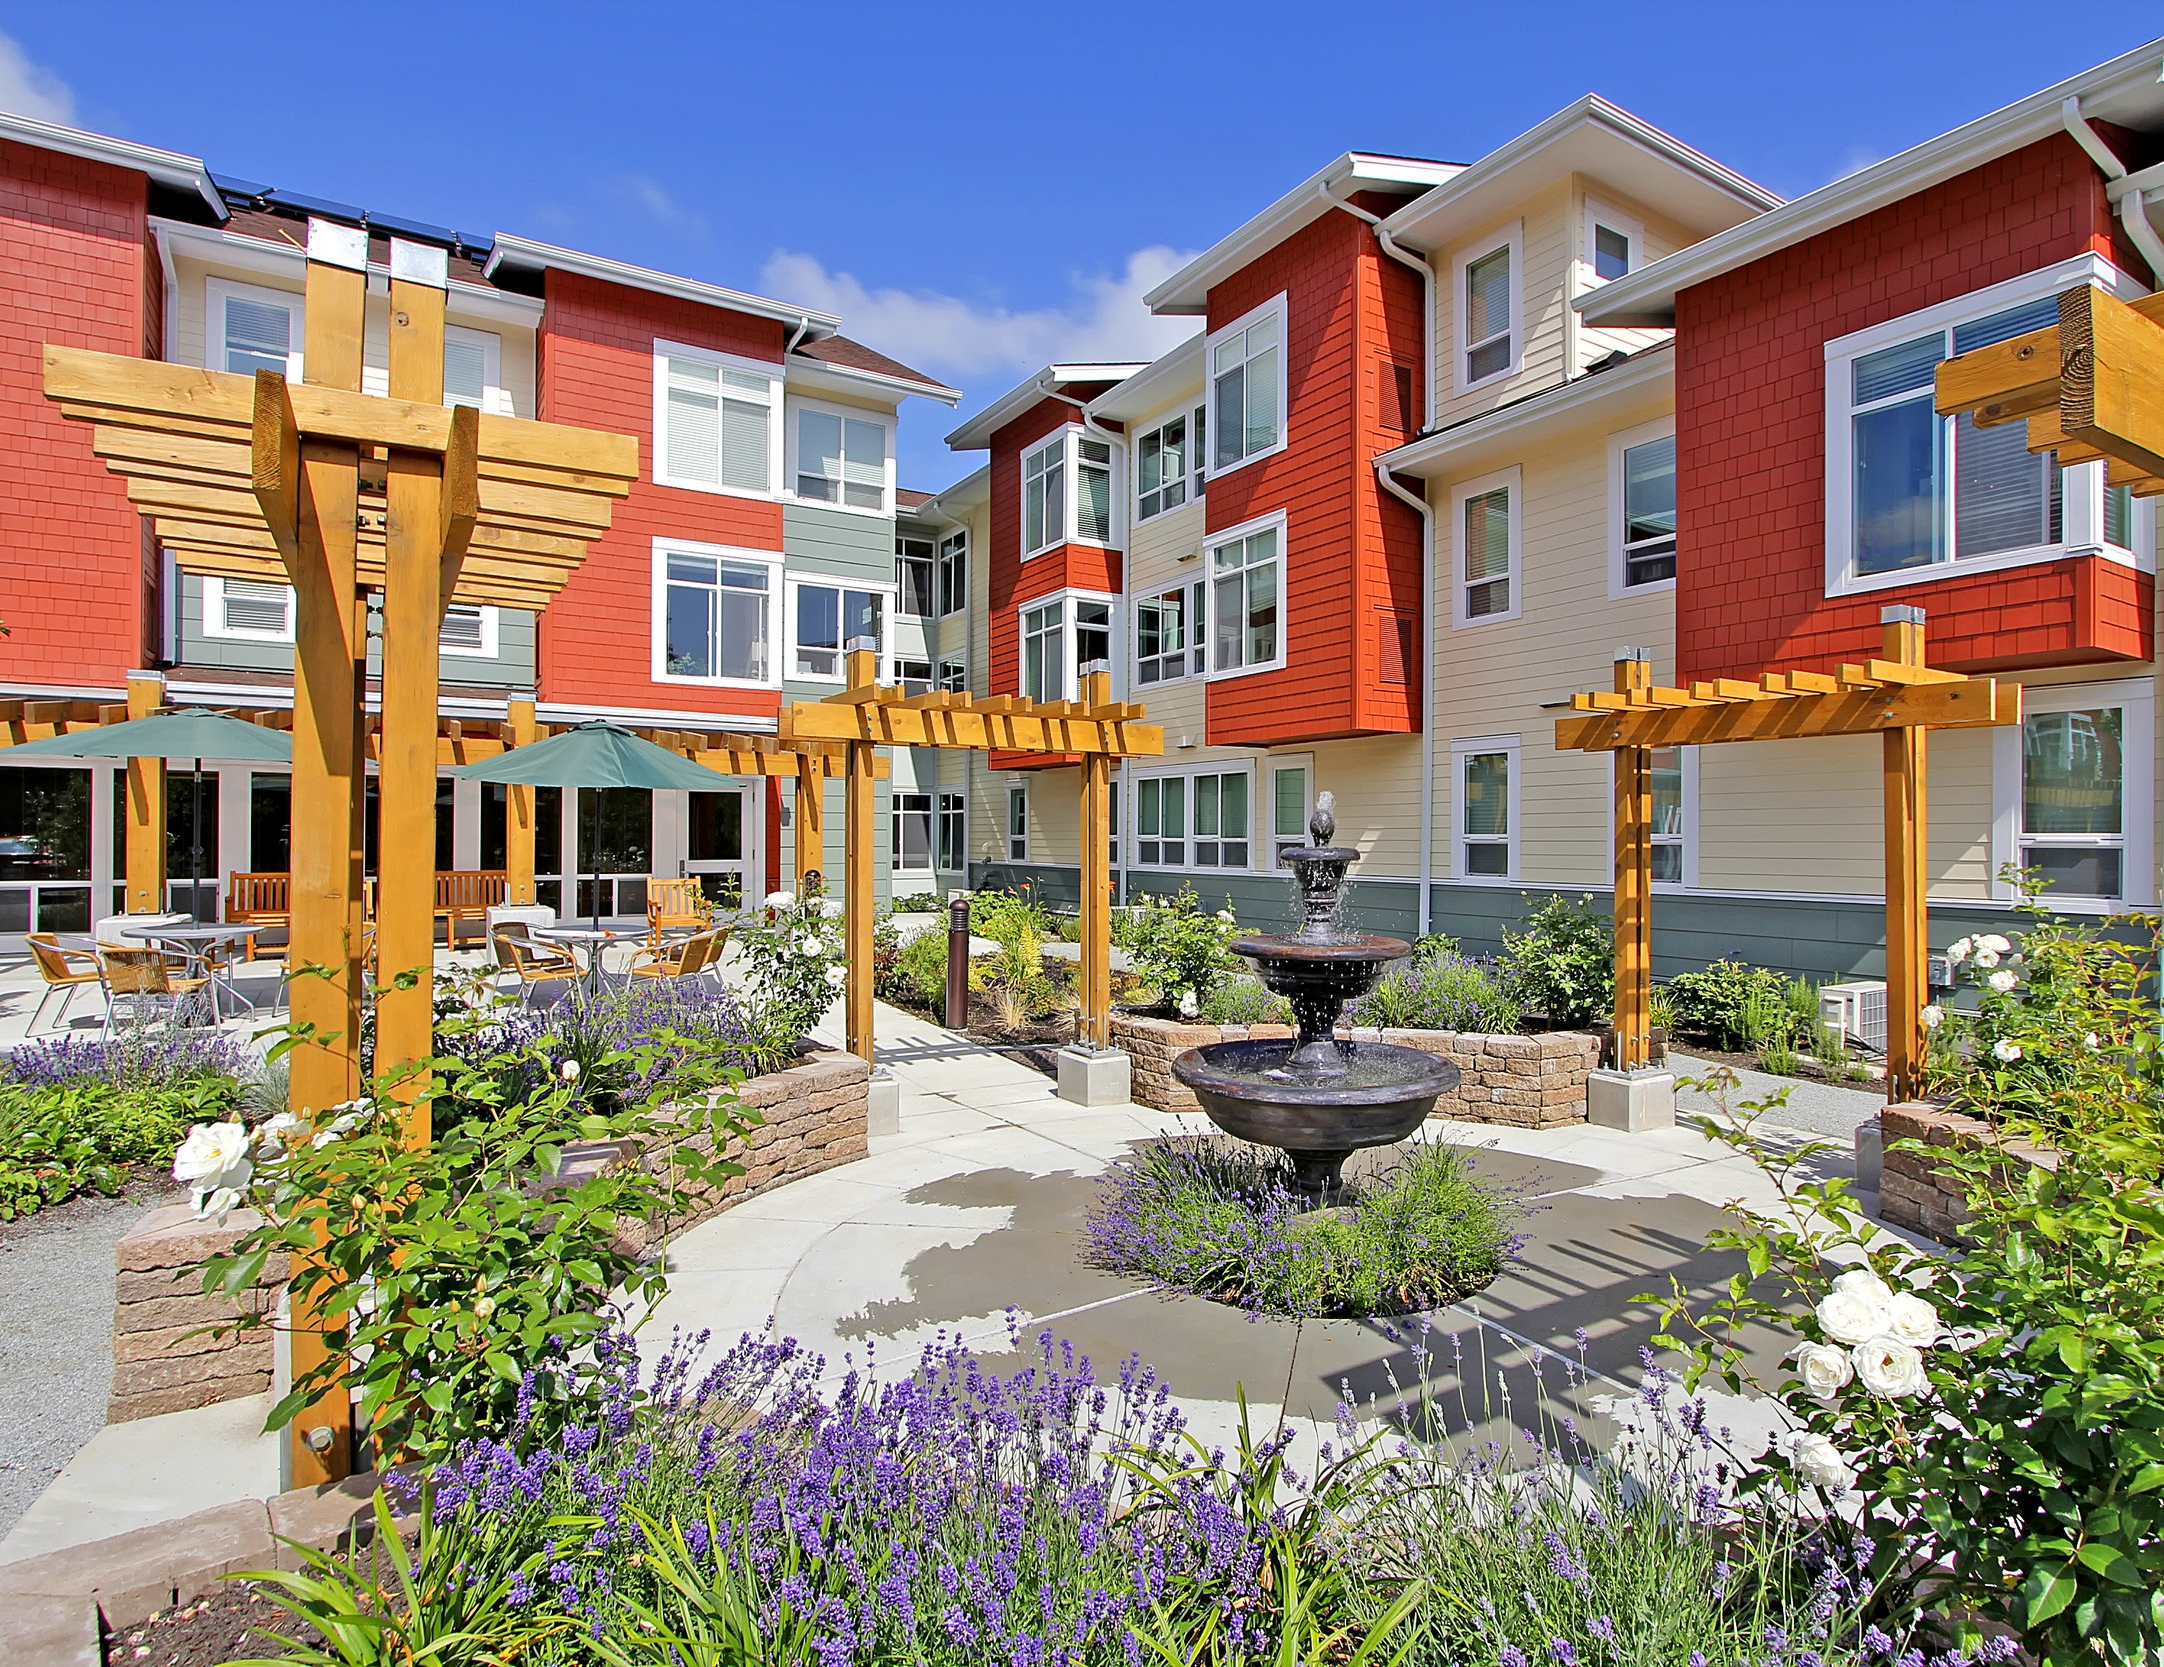 - Client: American Baptist Homes of the WestLocation: Tacoma, WashingtonCompletion: 2011Project Size: 55 Units, 45,000 SF